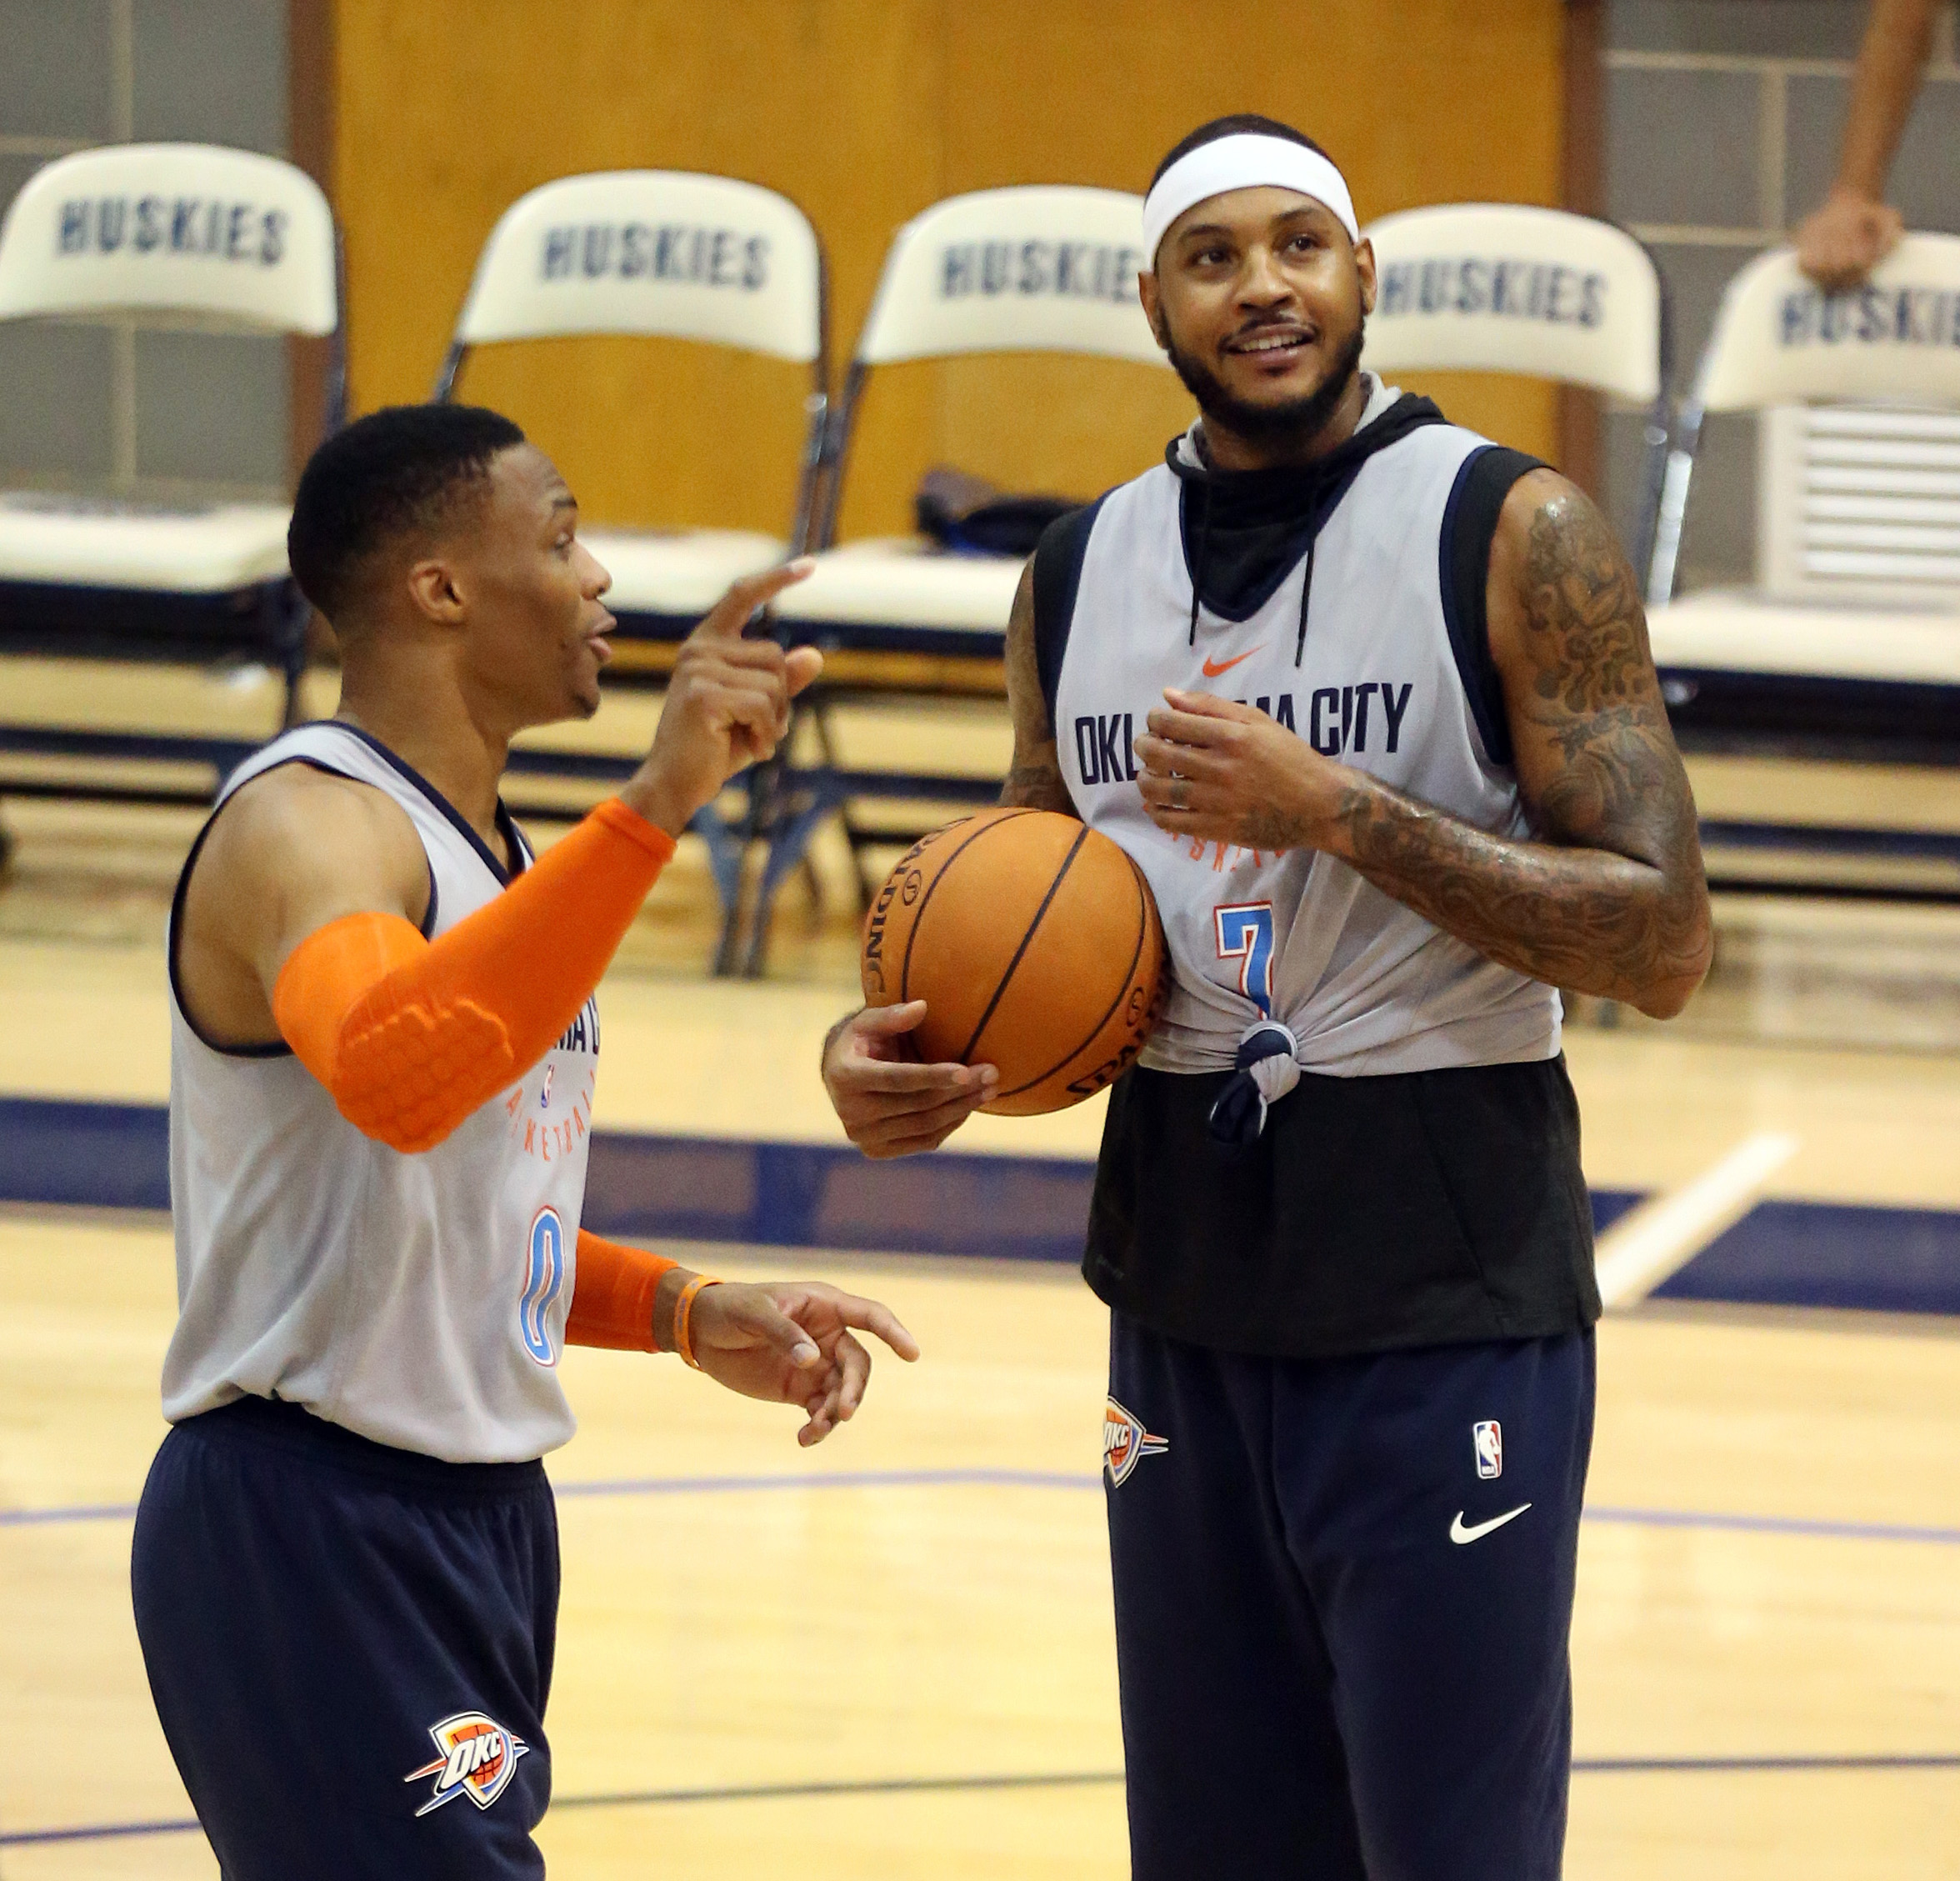 Westbrook-carmelo-thunder-scrimmage